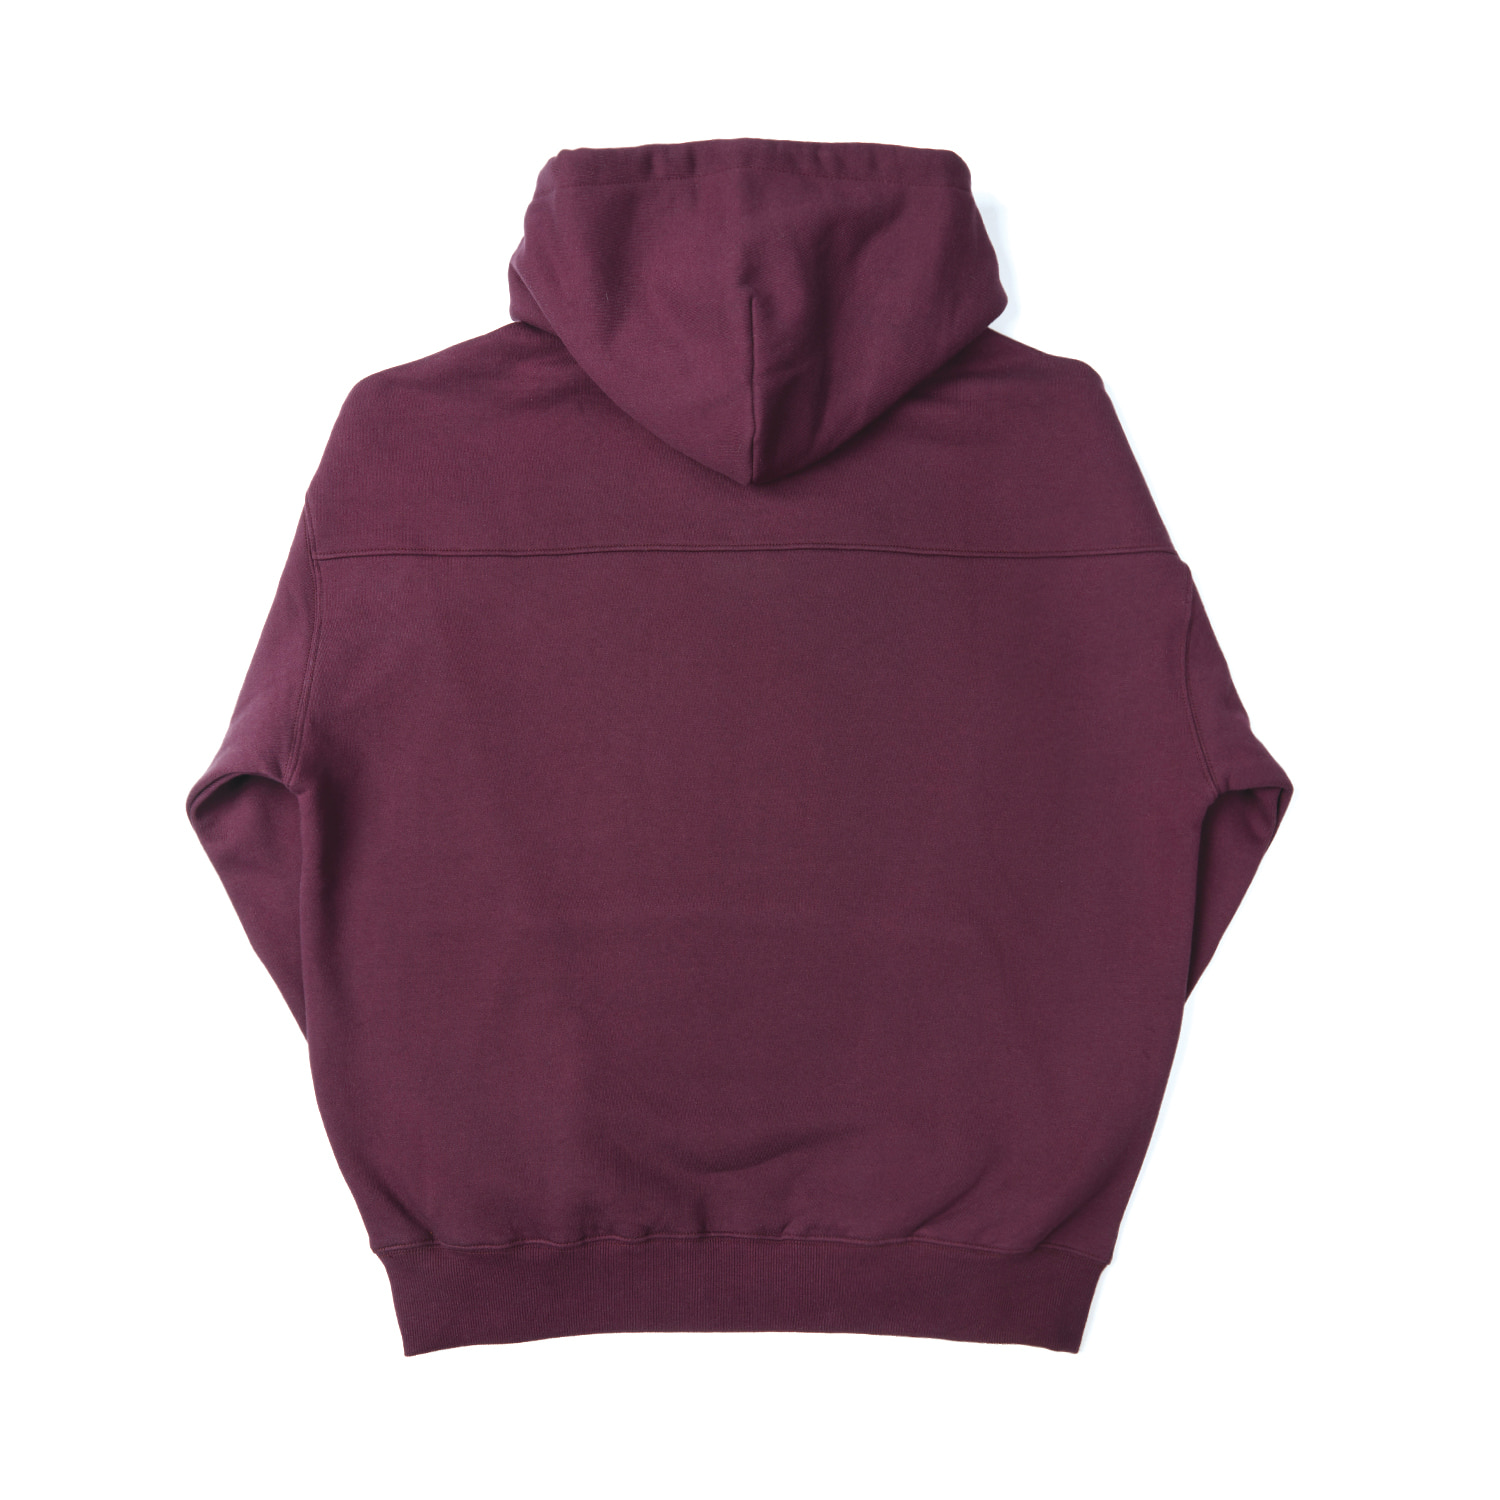 h-logo zip up / wine